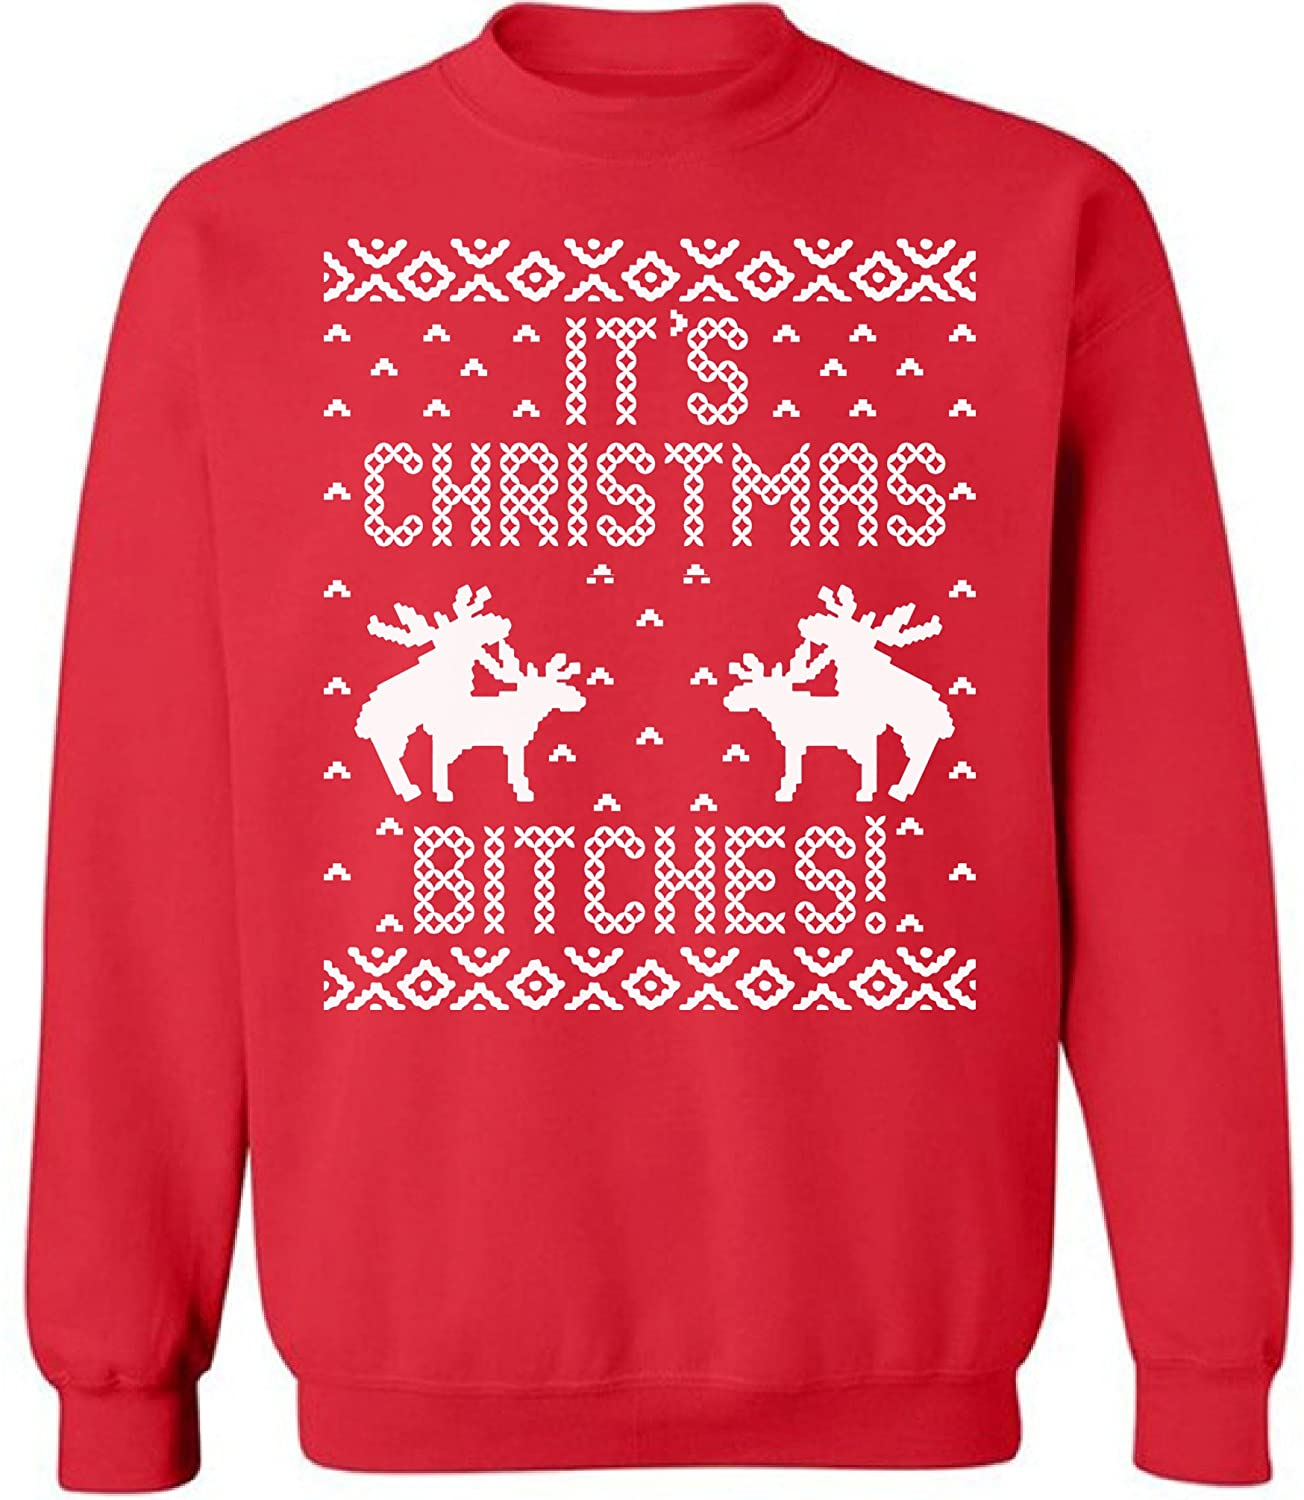 Pekatees Ugly Xmas Top Sweatshirt Hilarious Holiday Pattern Christmas Bitches Sweater